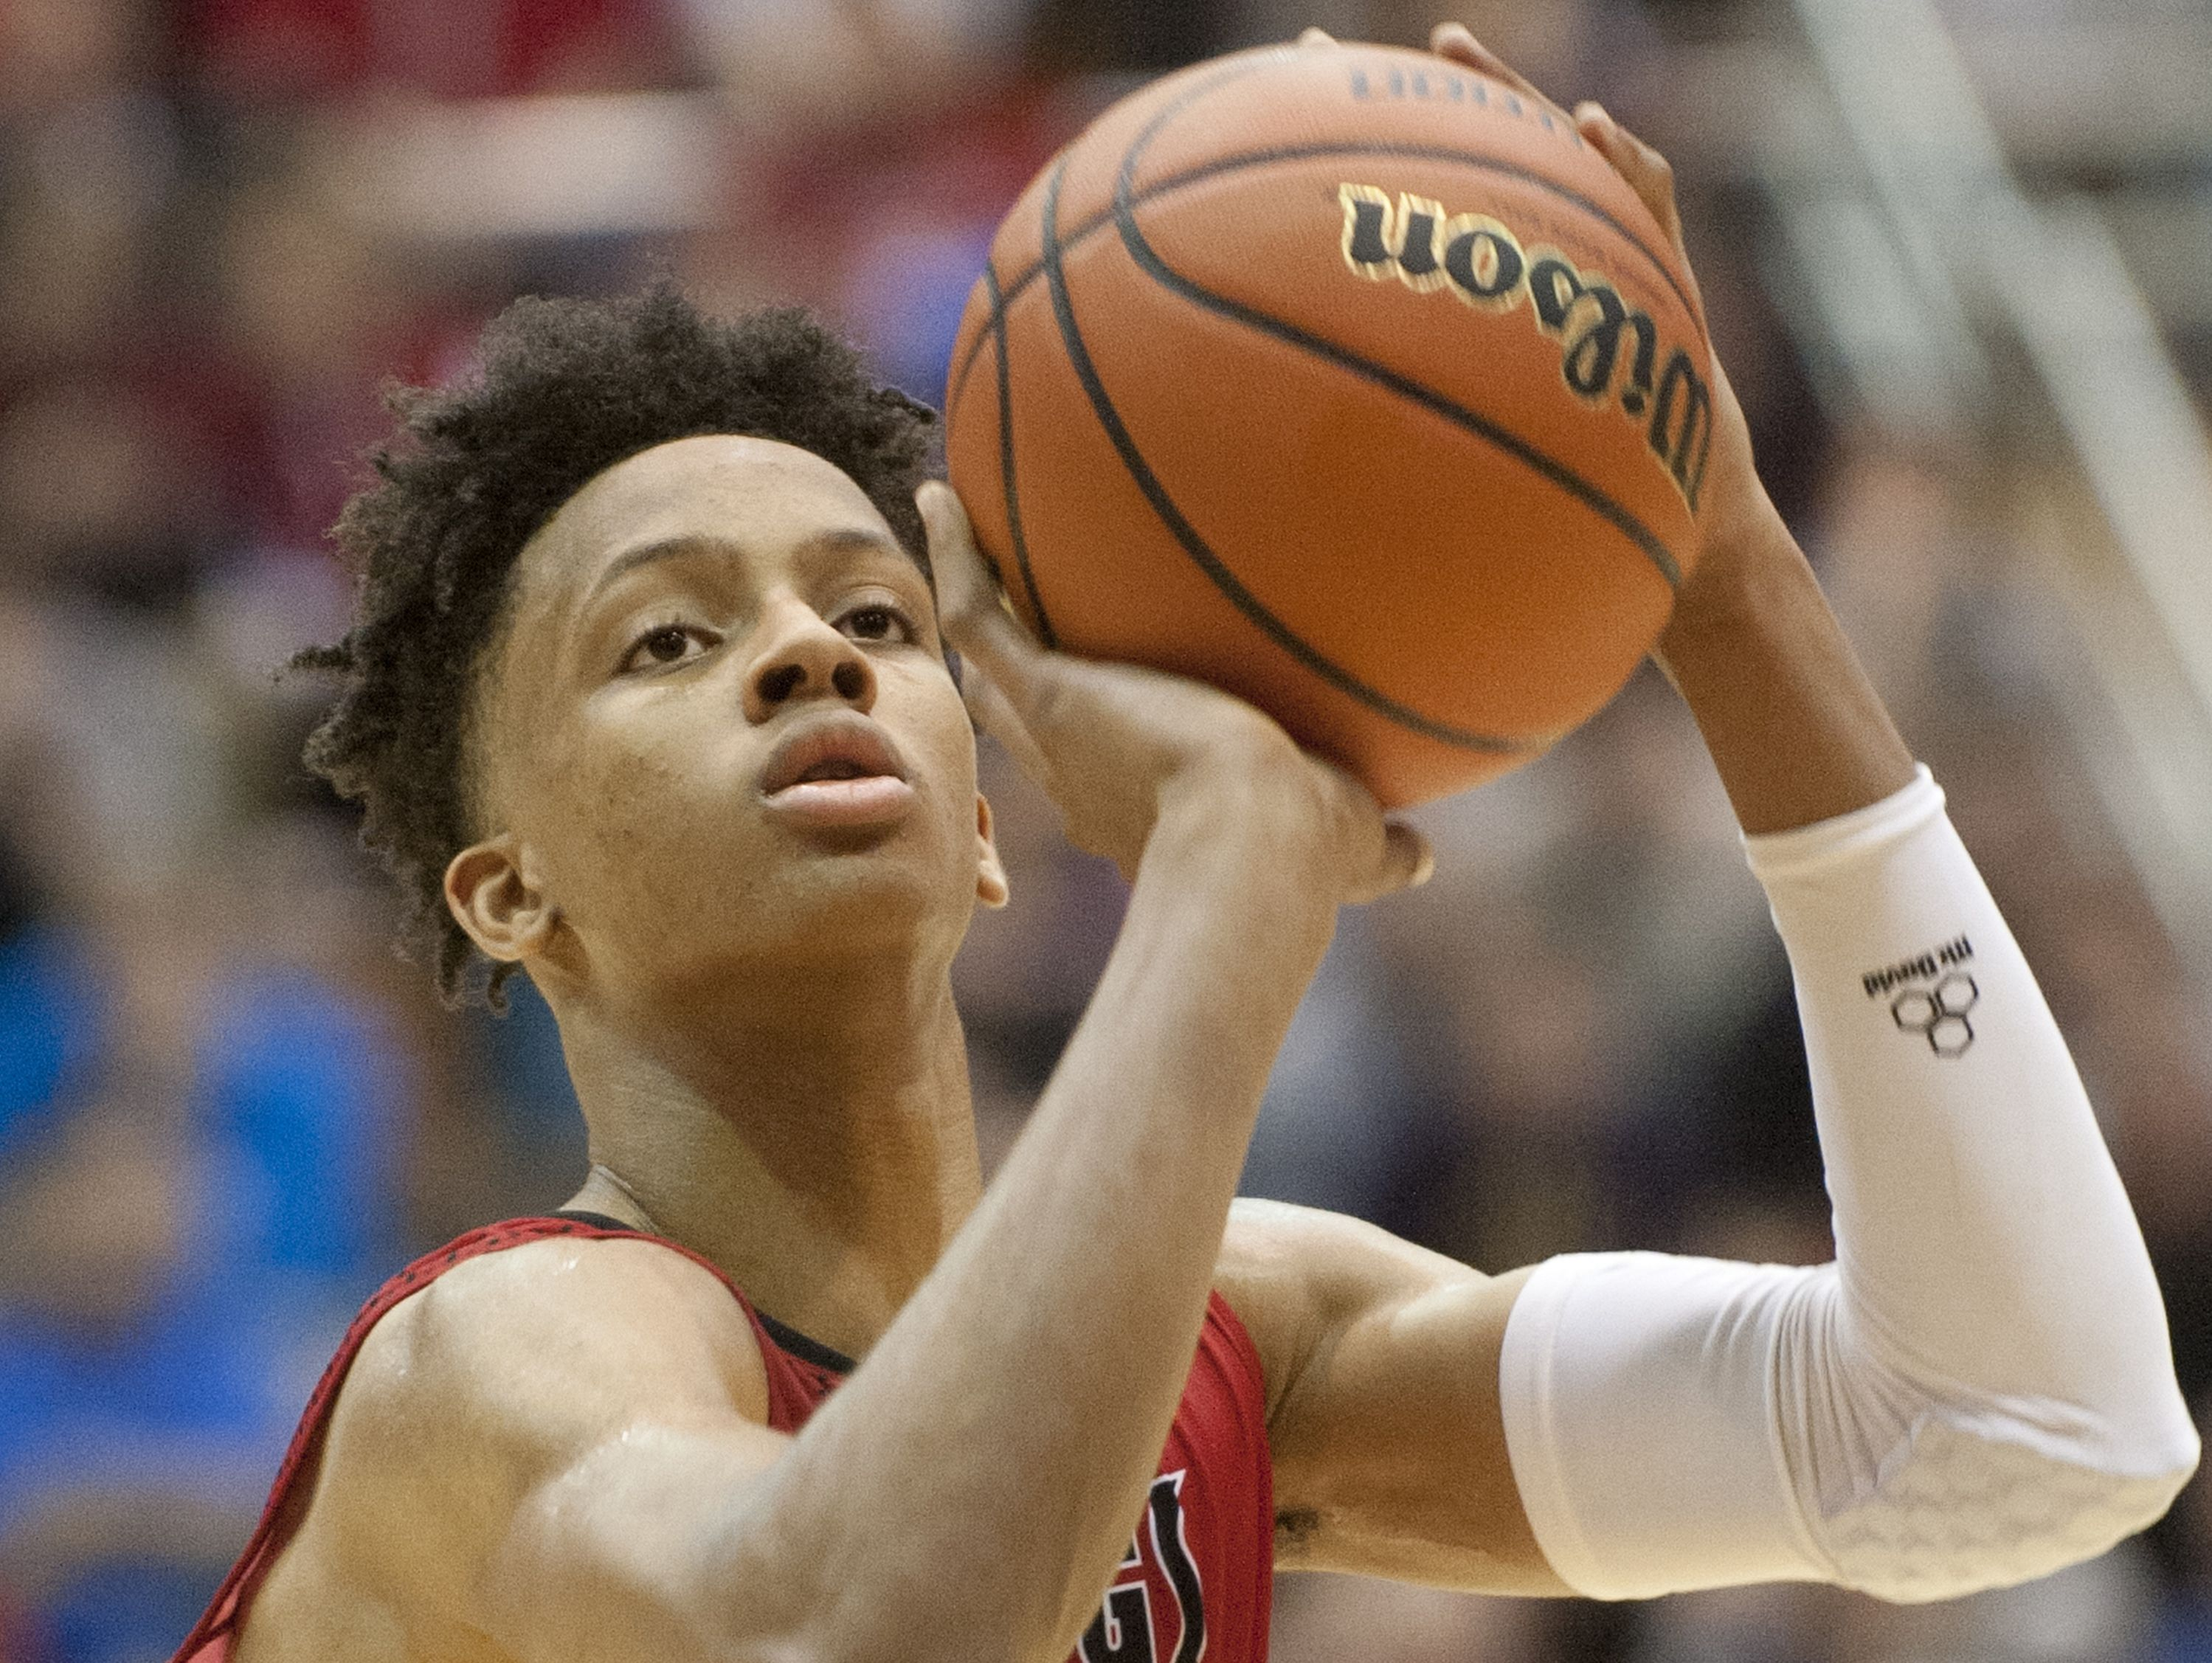 New Albany's Romeo Langford is the No. 3 ranked player in 2018 class.